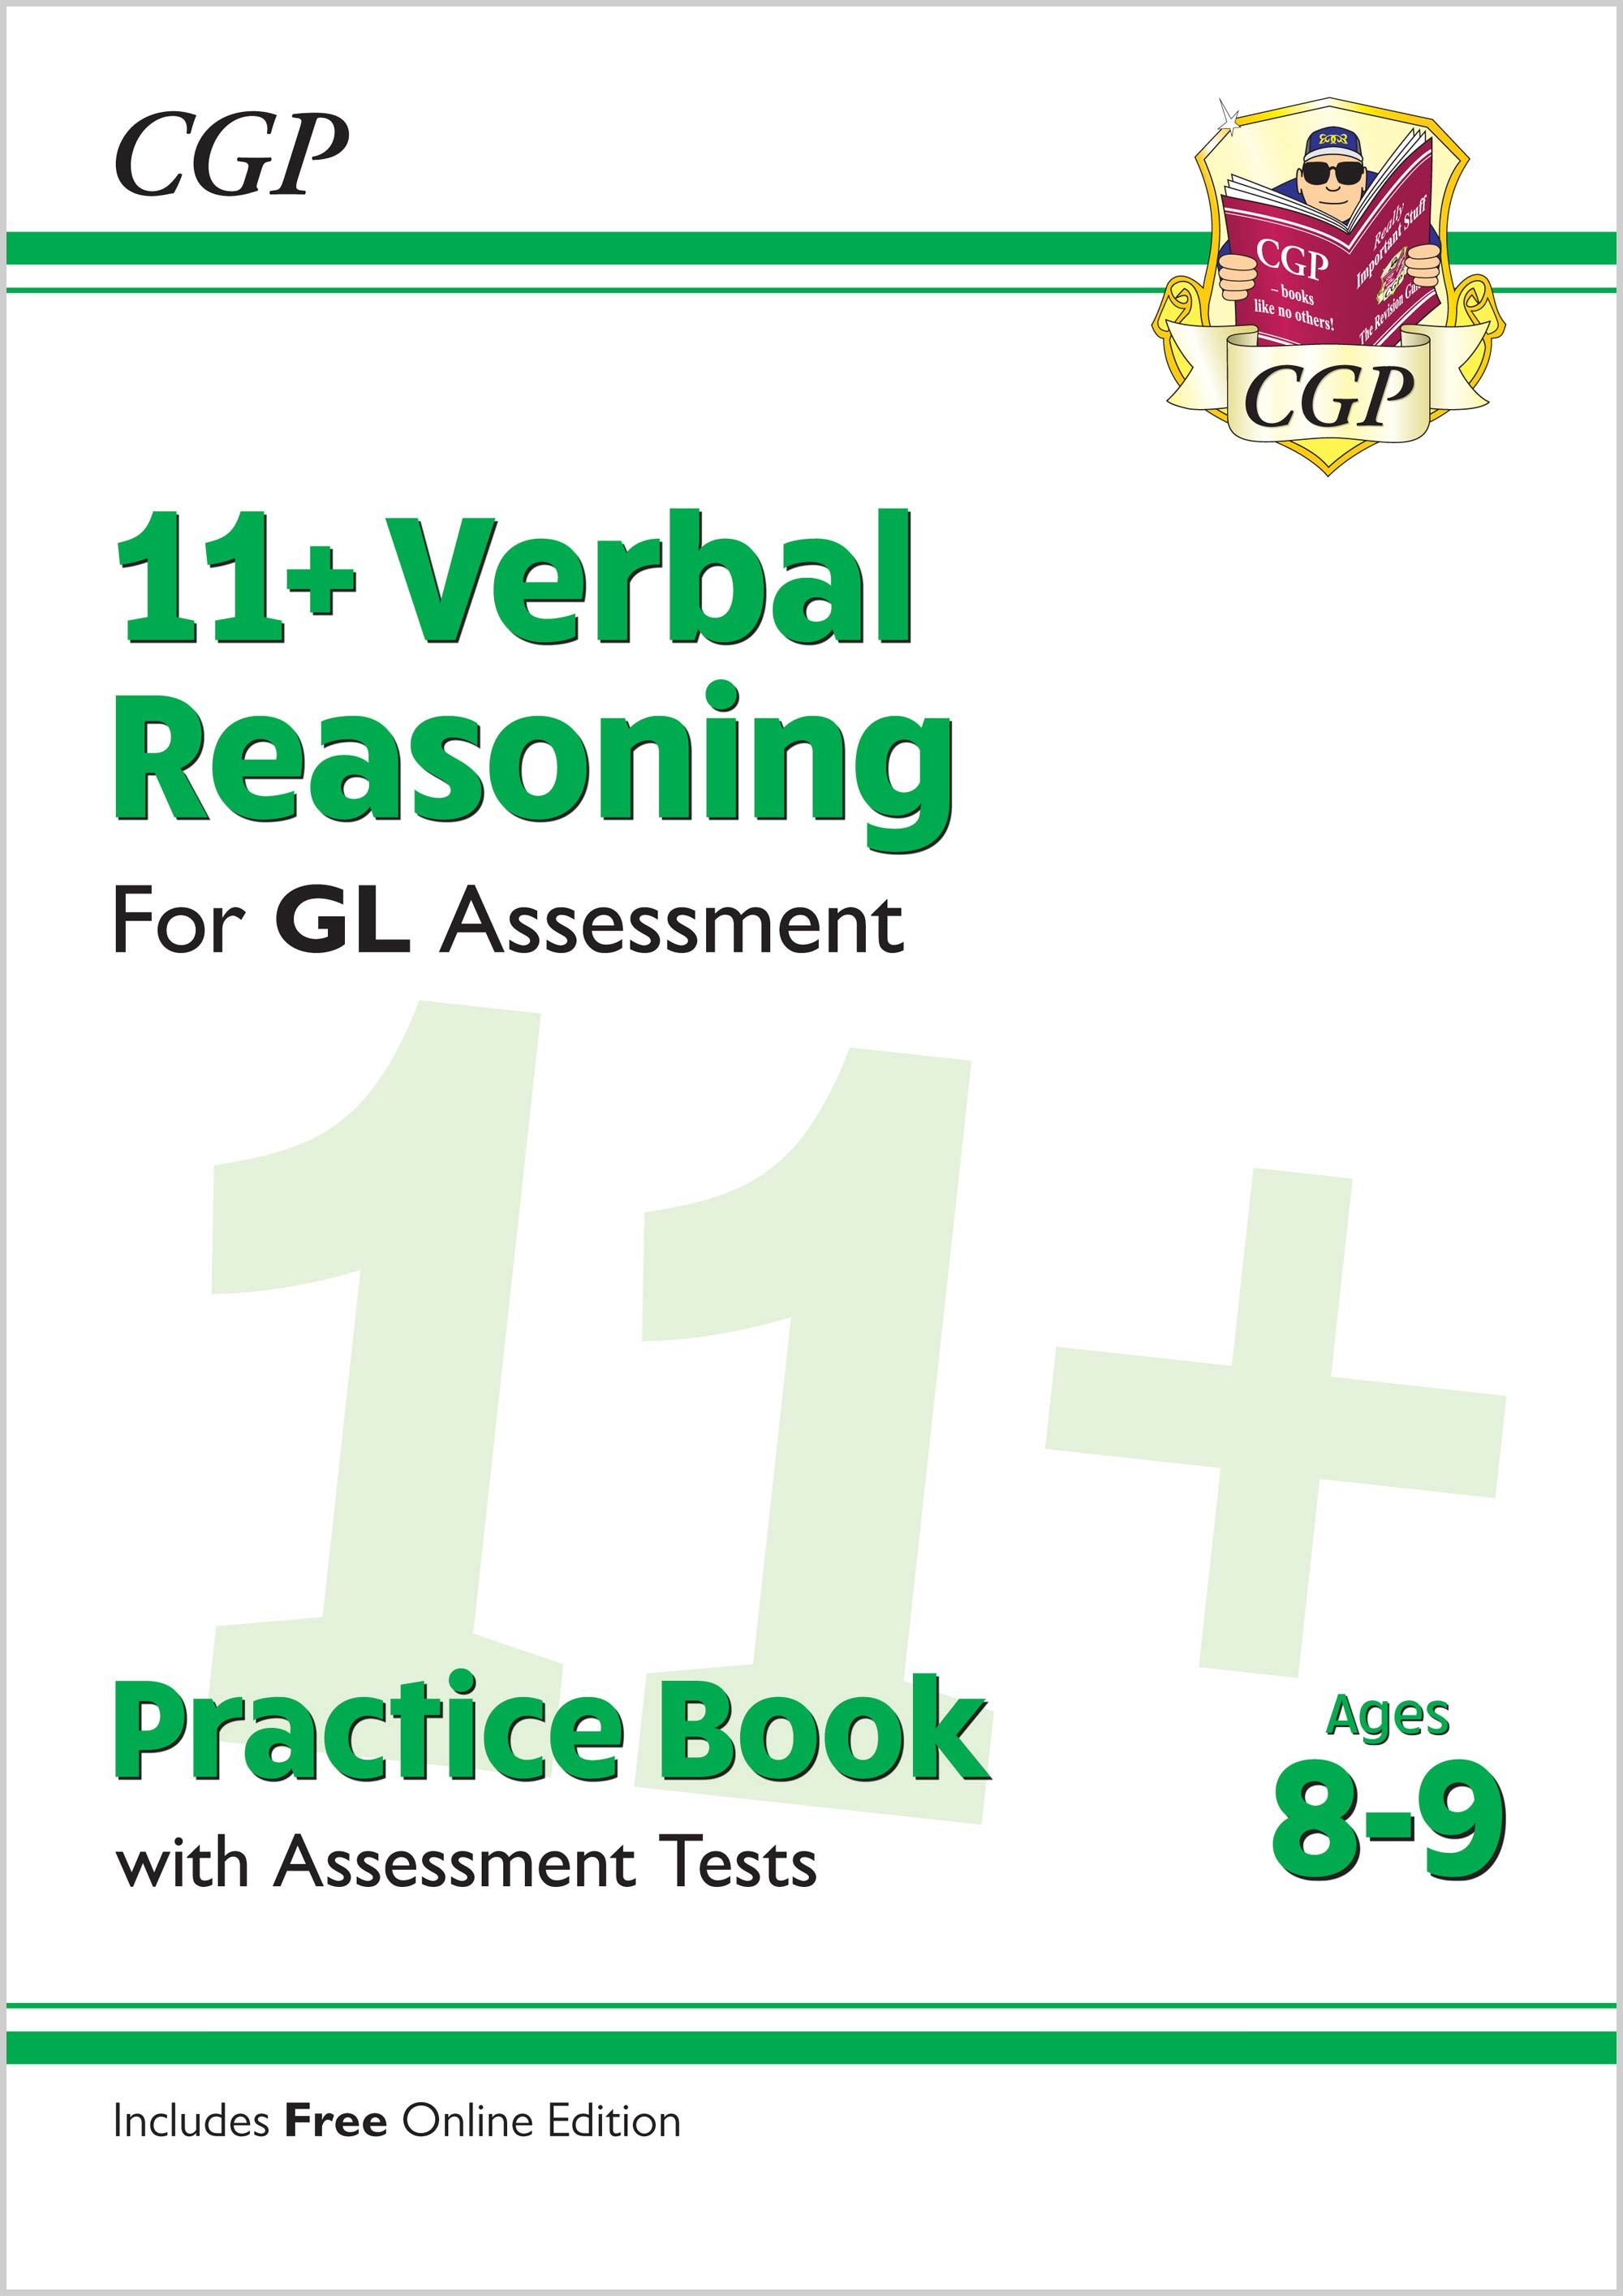 V4QE2 - New 11+ GL Verbal Reasoning Practice Book & Assessment Tests - Ages 8-9 (with Online Edition